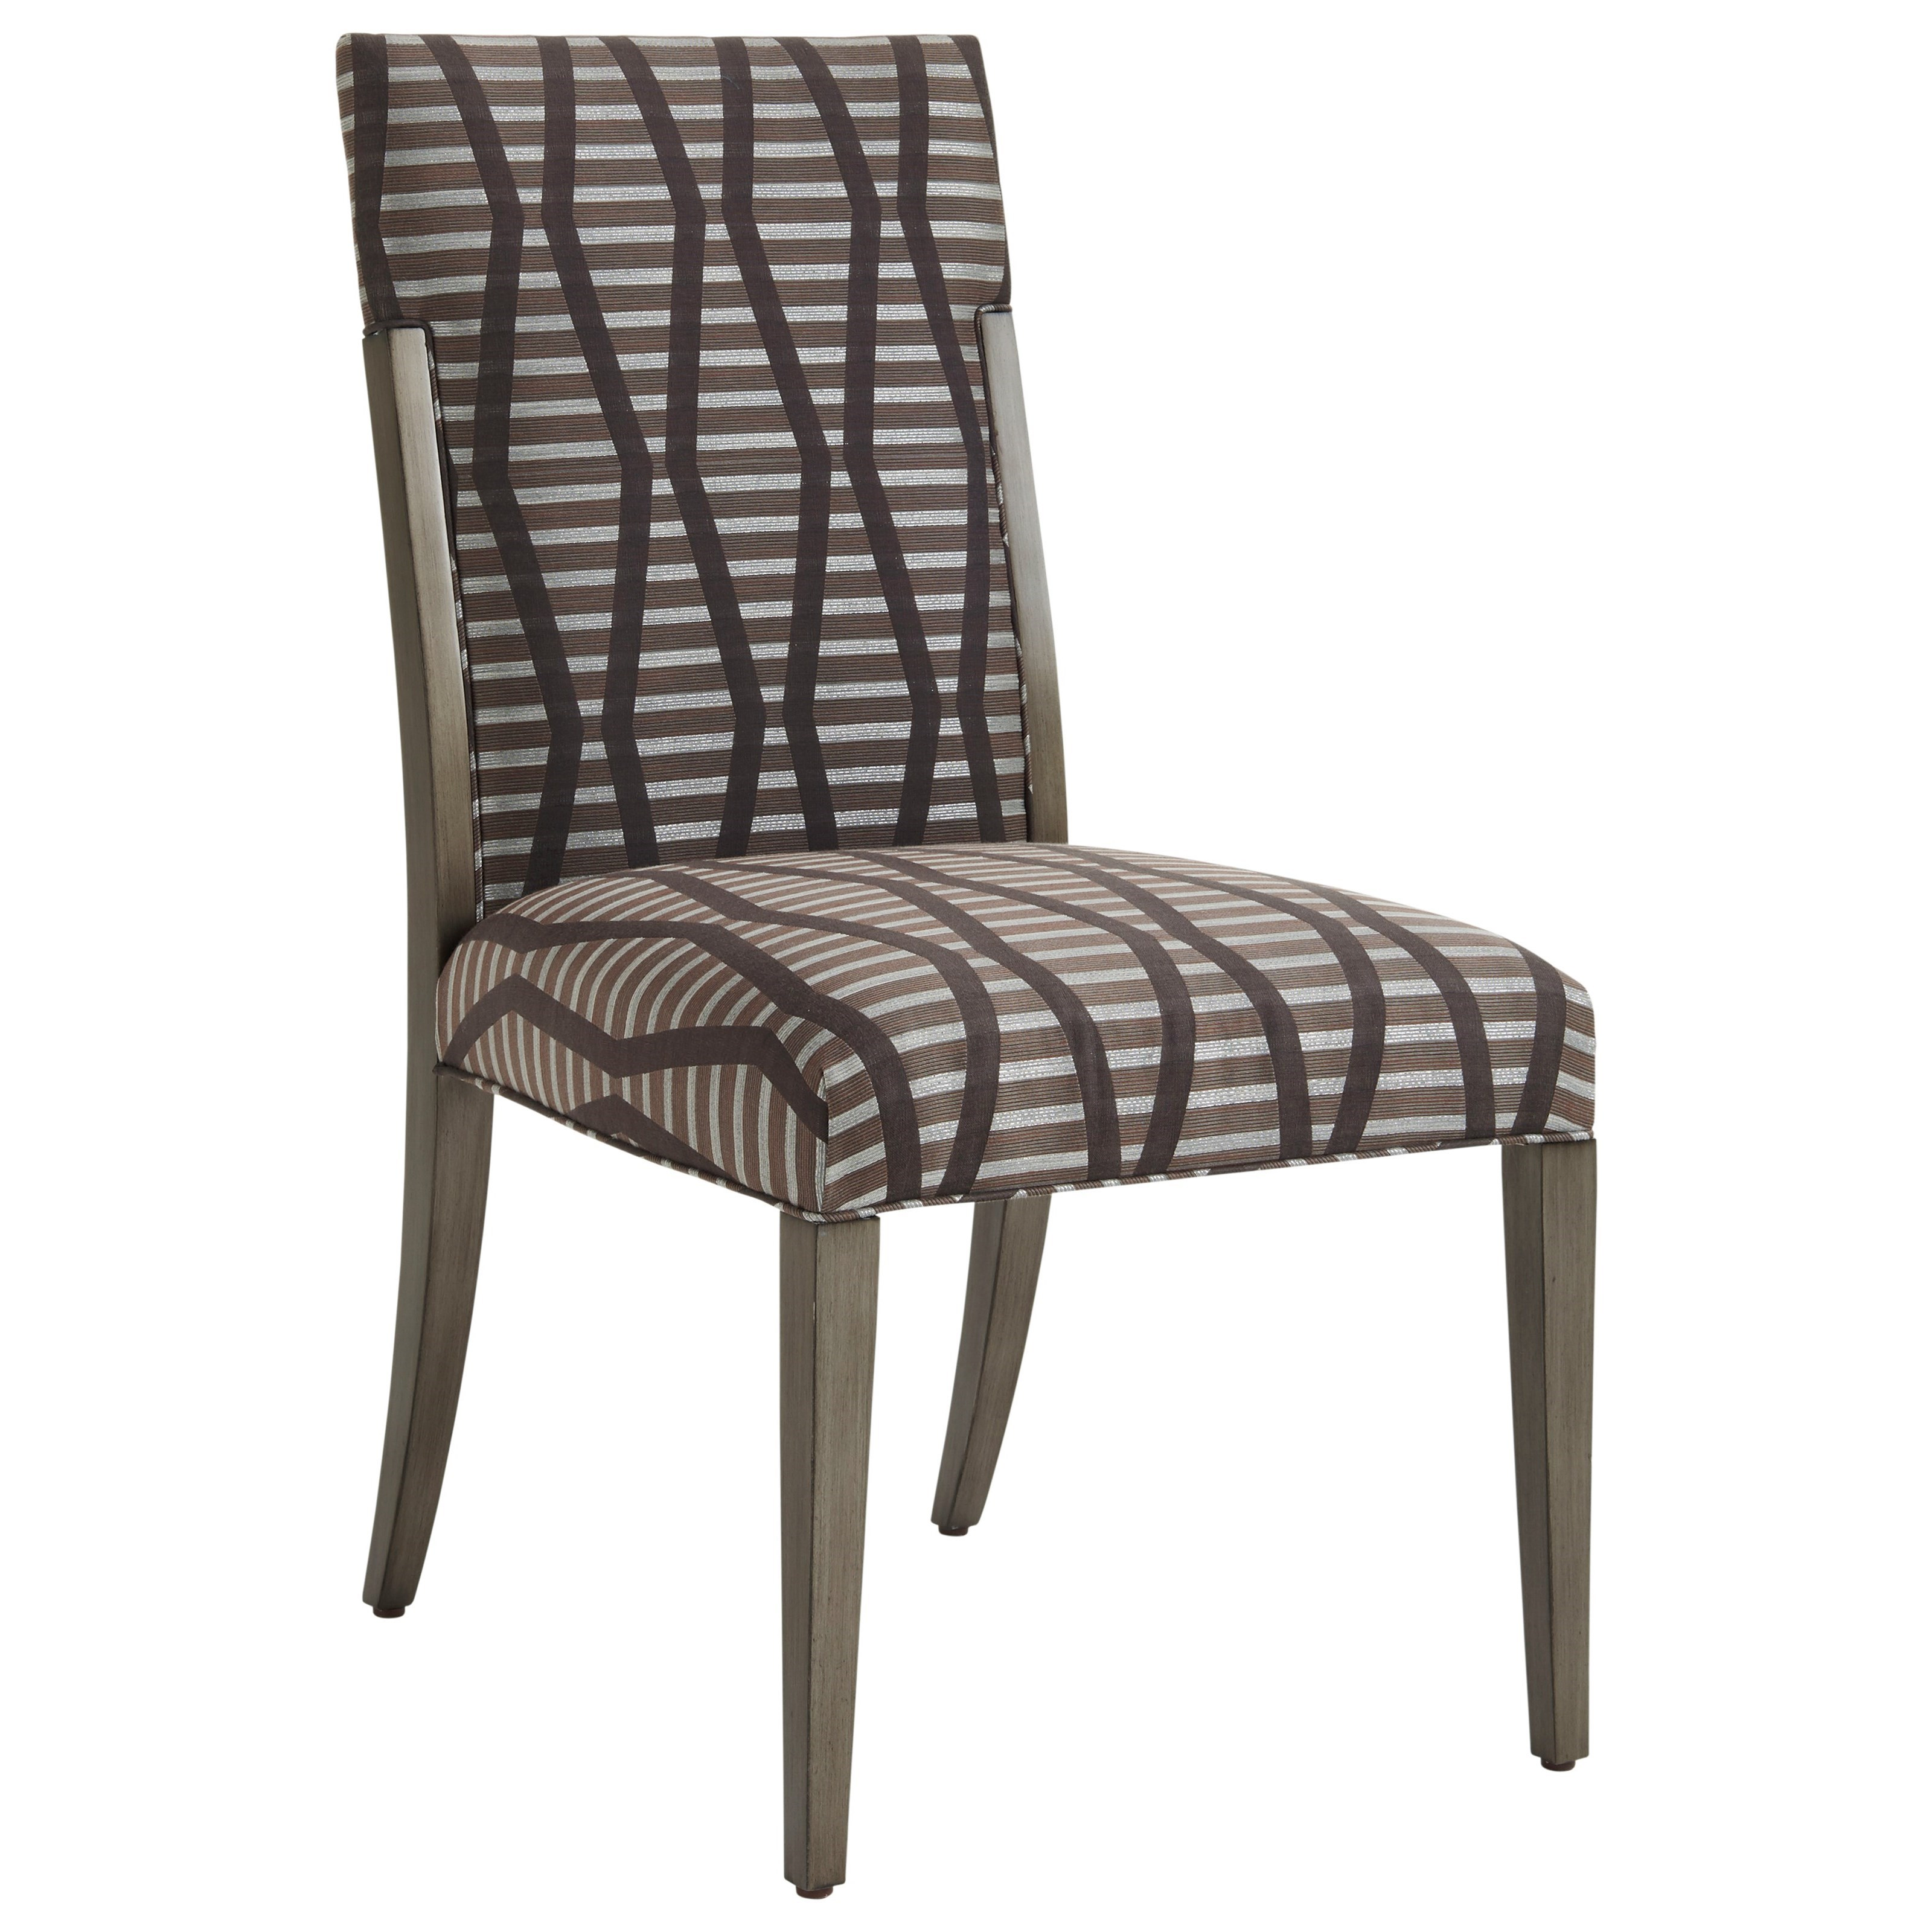 Ariana Saverne Upholstered Side Chair by Lexington at Johnny Janosik